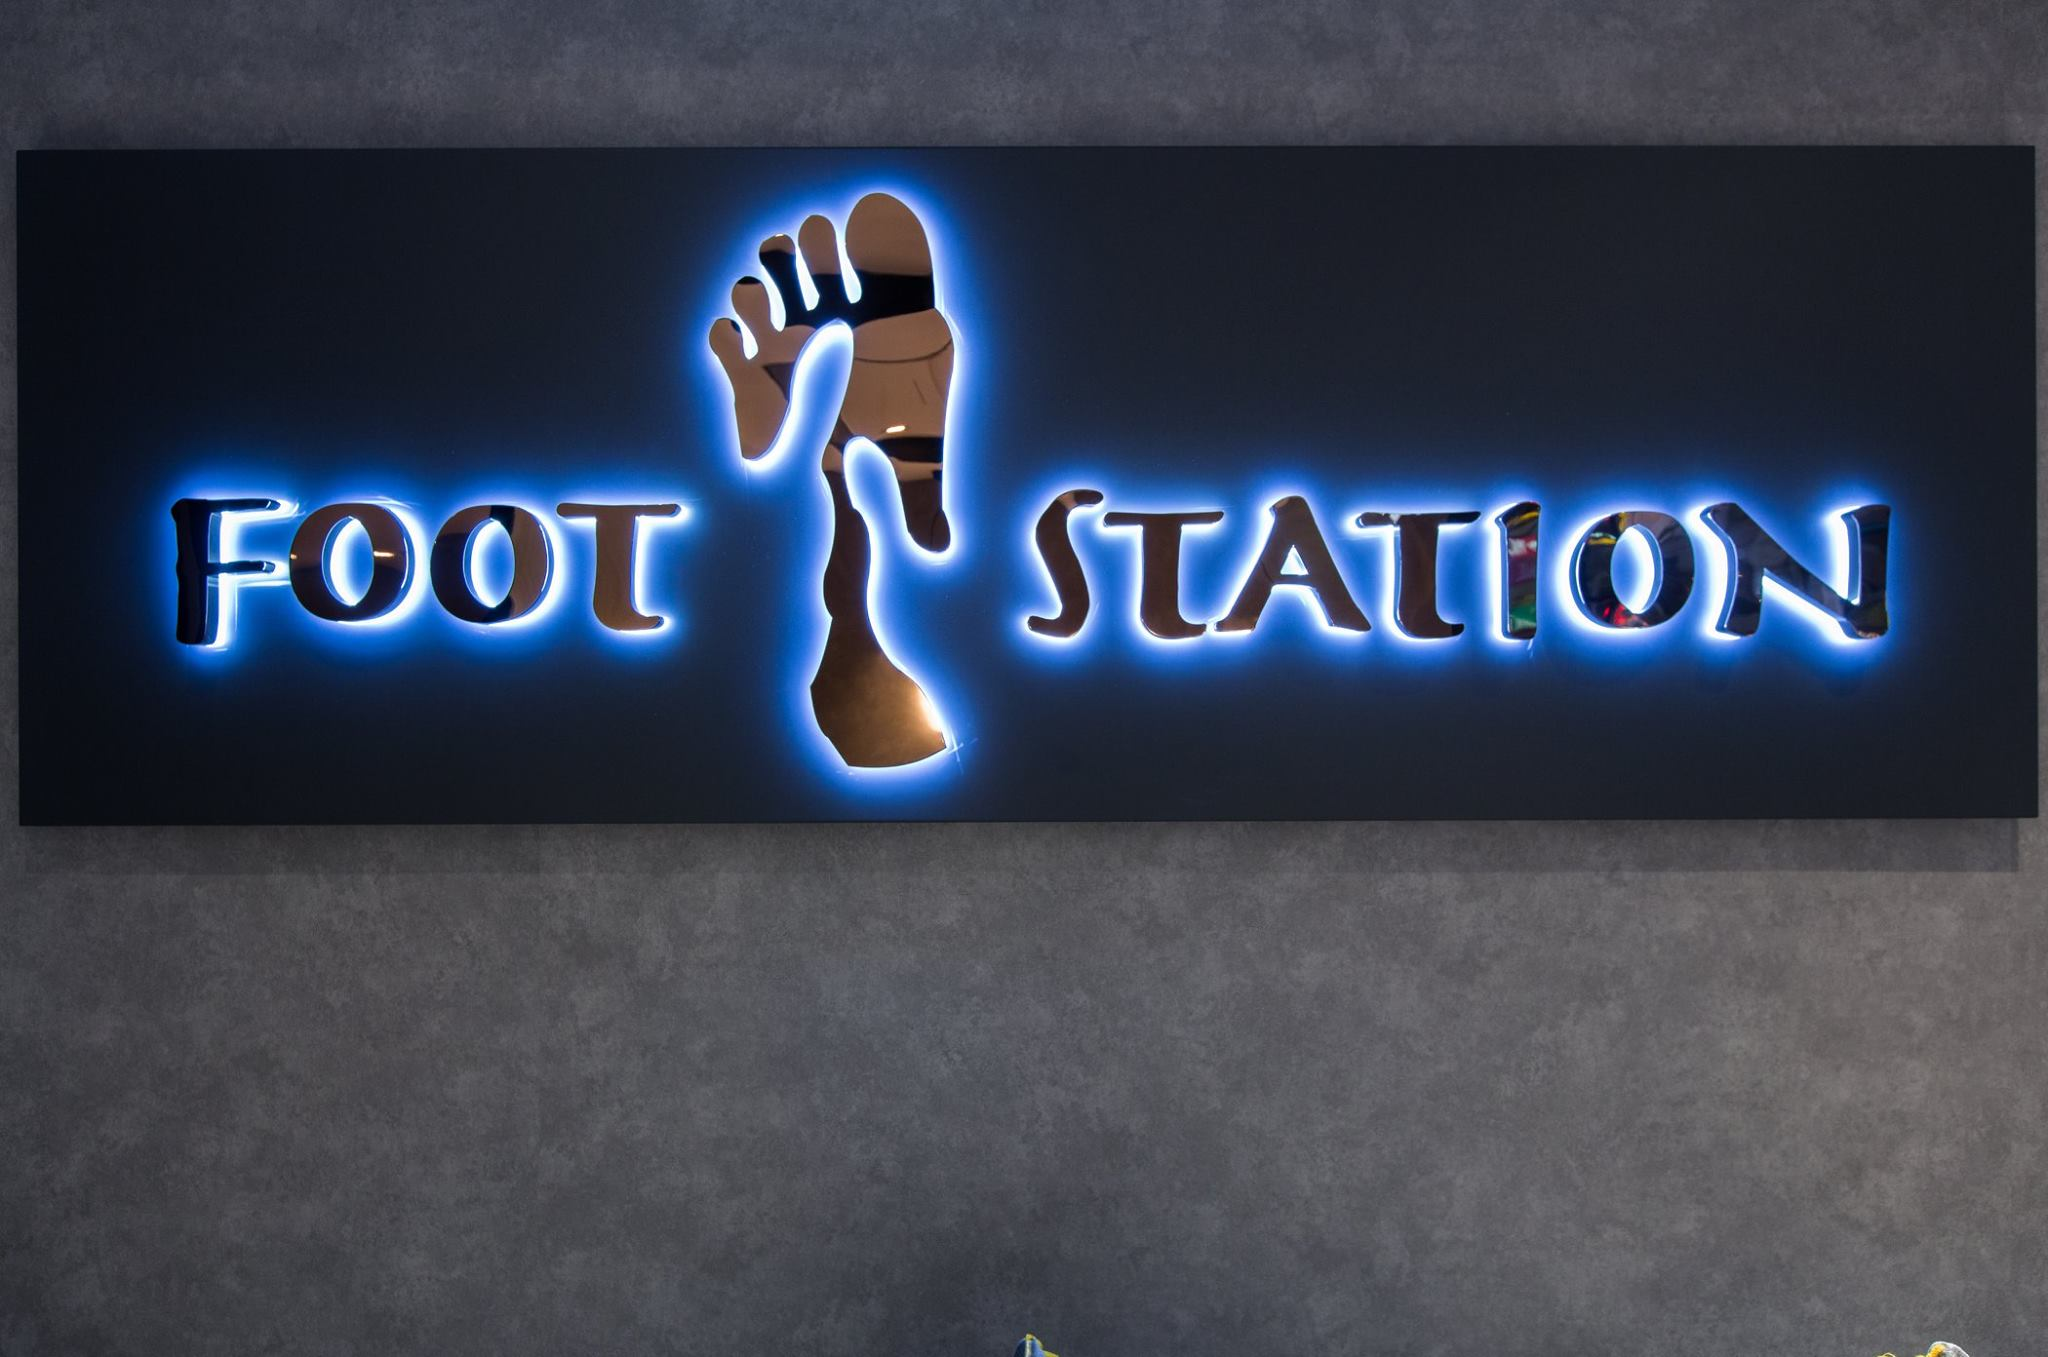 Foot Station